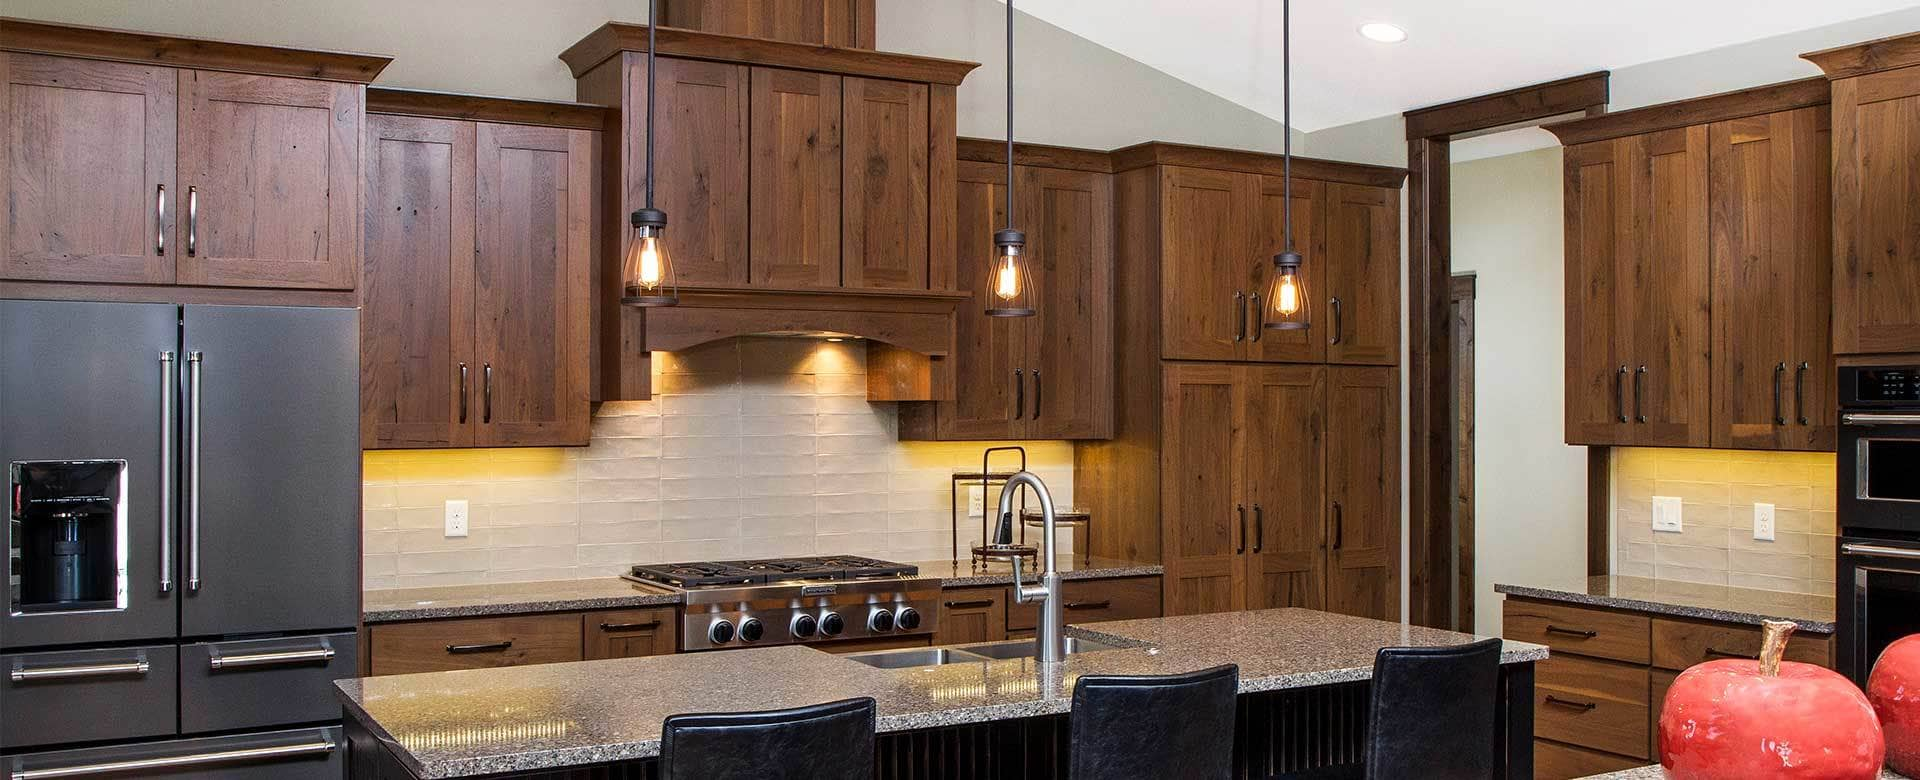 Utah Cabinets Manufacturer Salt Lake City Bathroom Kitchen